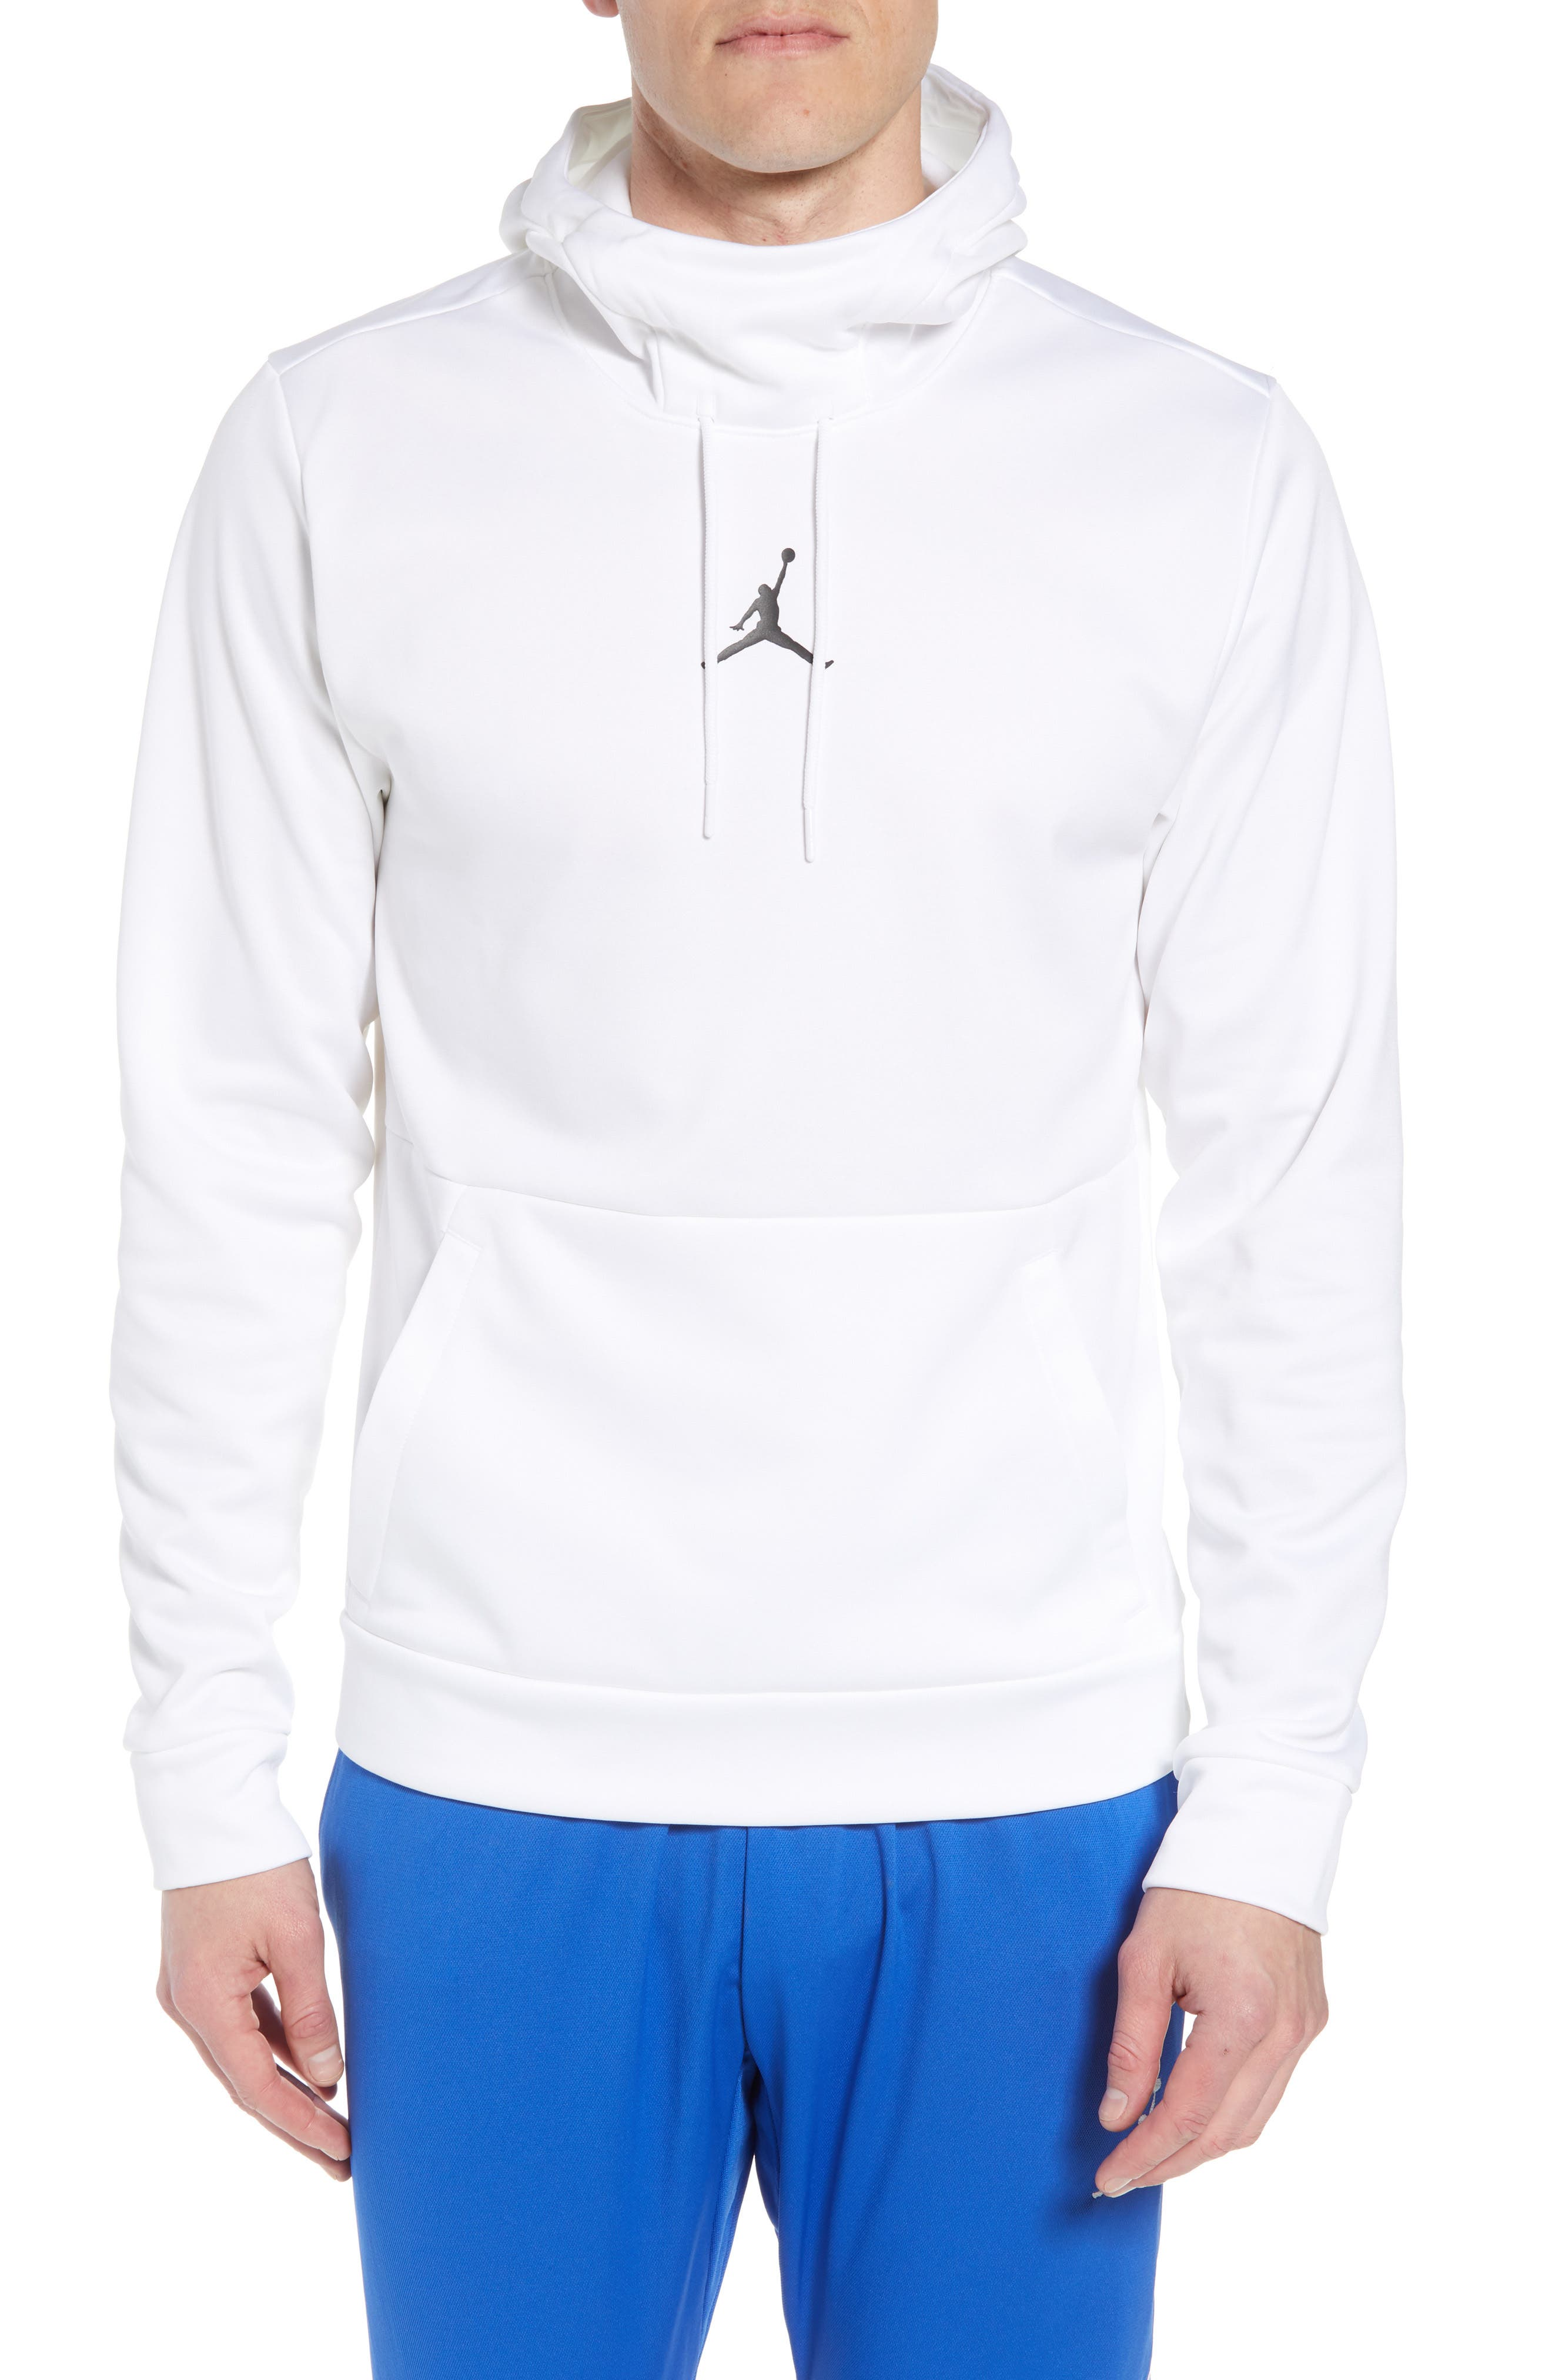 23 Alpha Training Hoodie,                         Main,                         color, 100